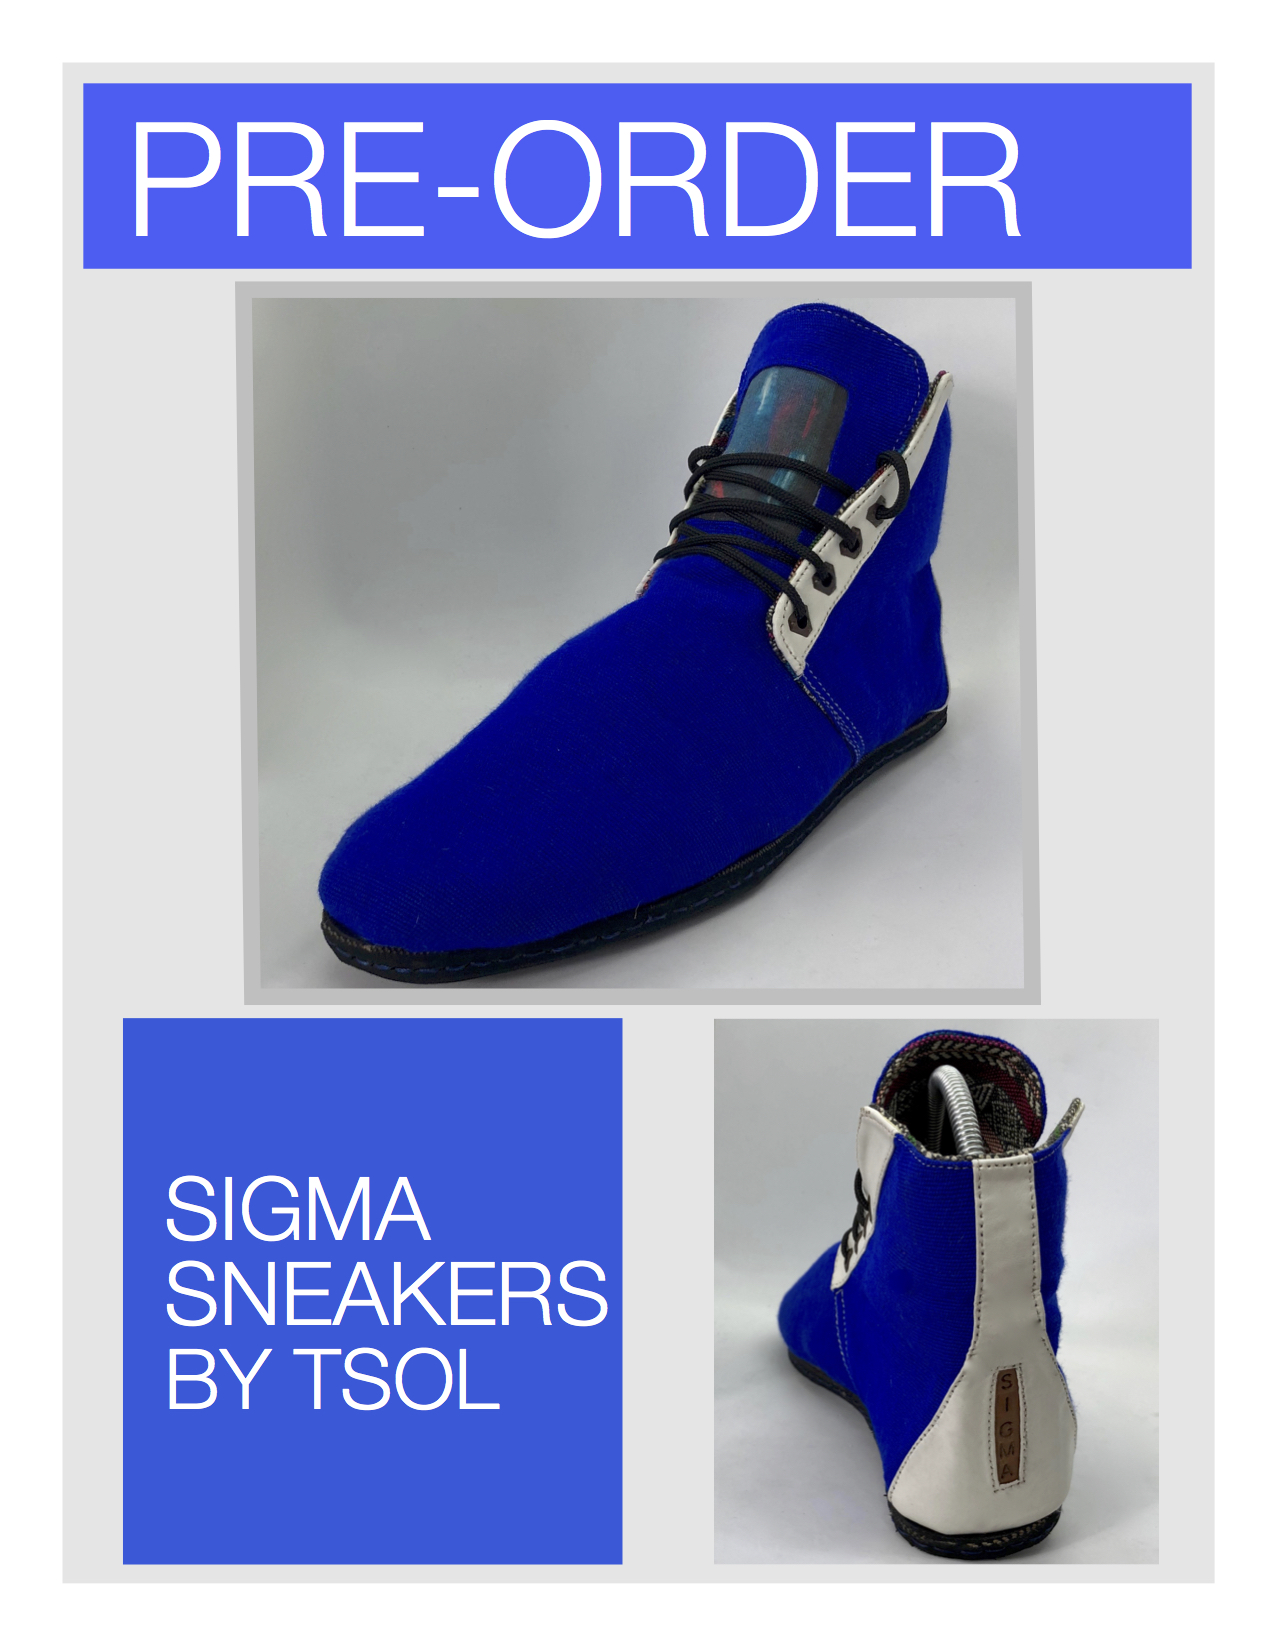 SIGMA Fraternity Sneakers by tsoL apparel - STEP IN COMFORTtsoL apparel's Tribute Series